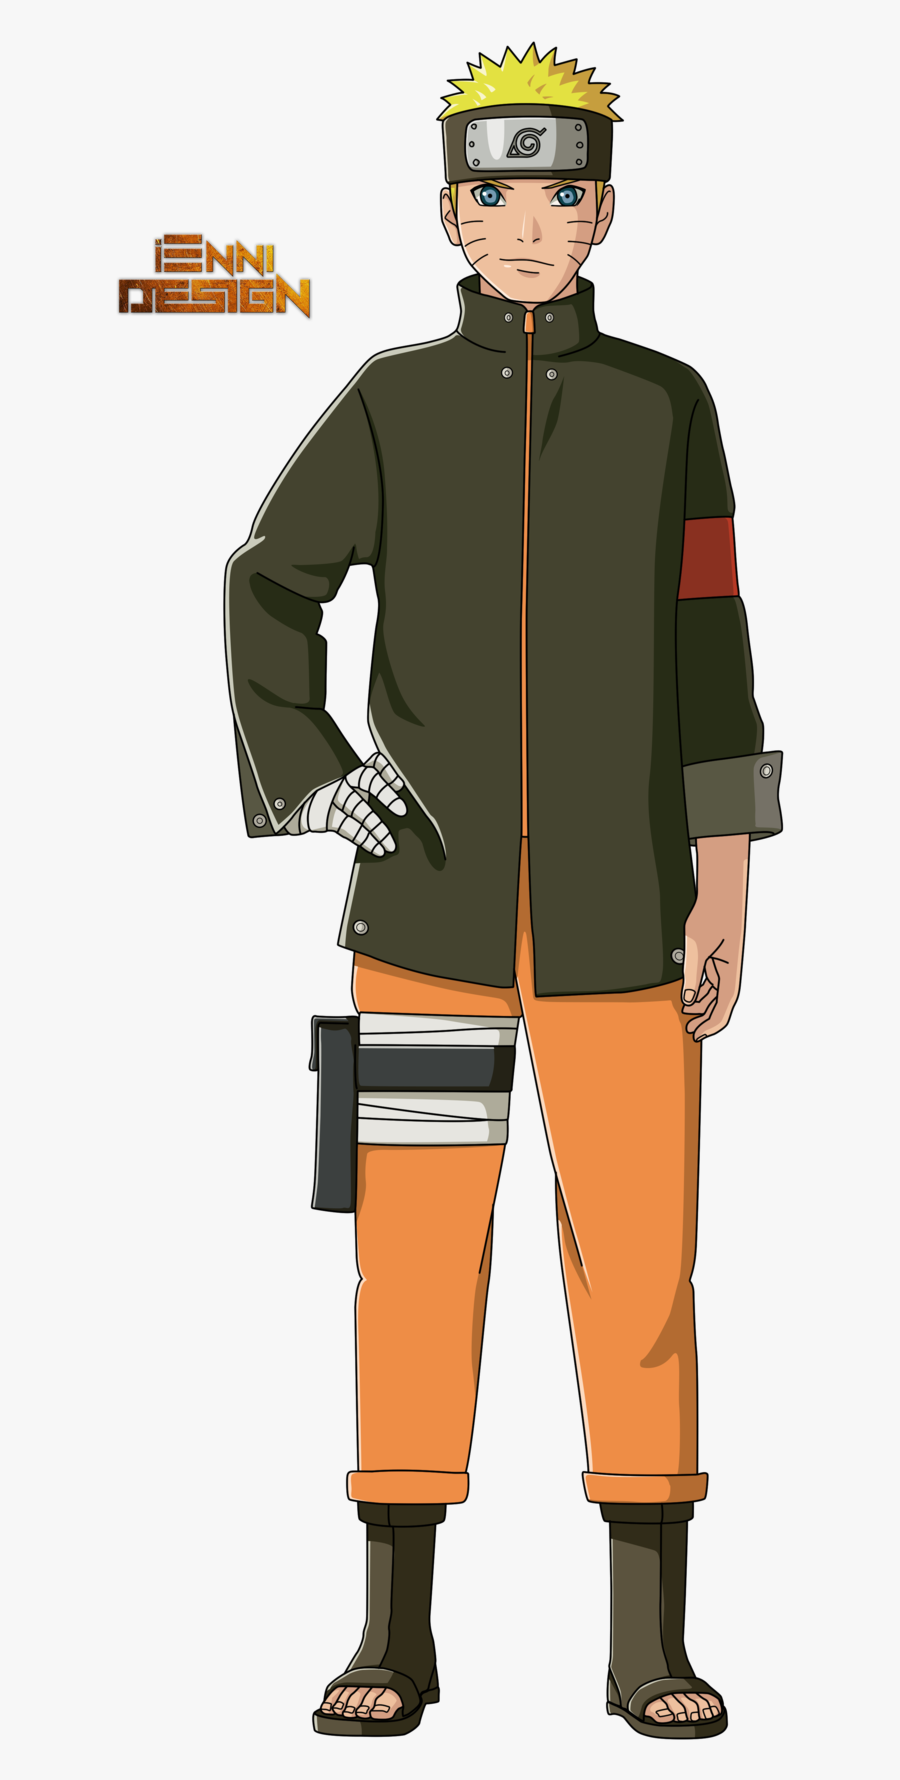 Download Naruto The Last Png Transparent For Designing - Naruto Uzumaki Naruto The Last, Transparent Clipart